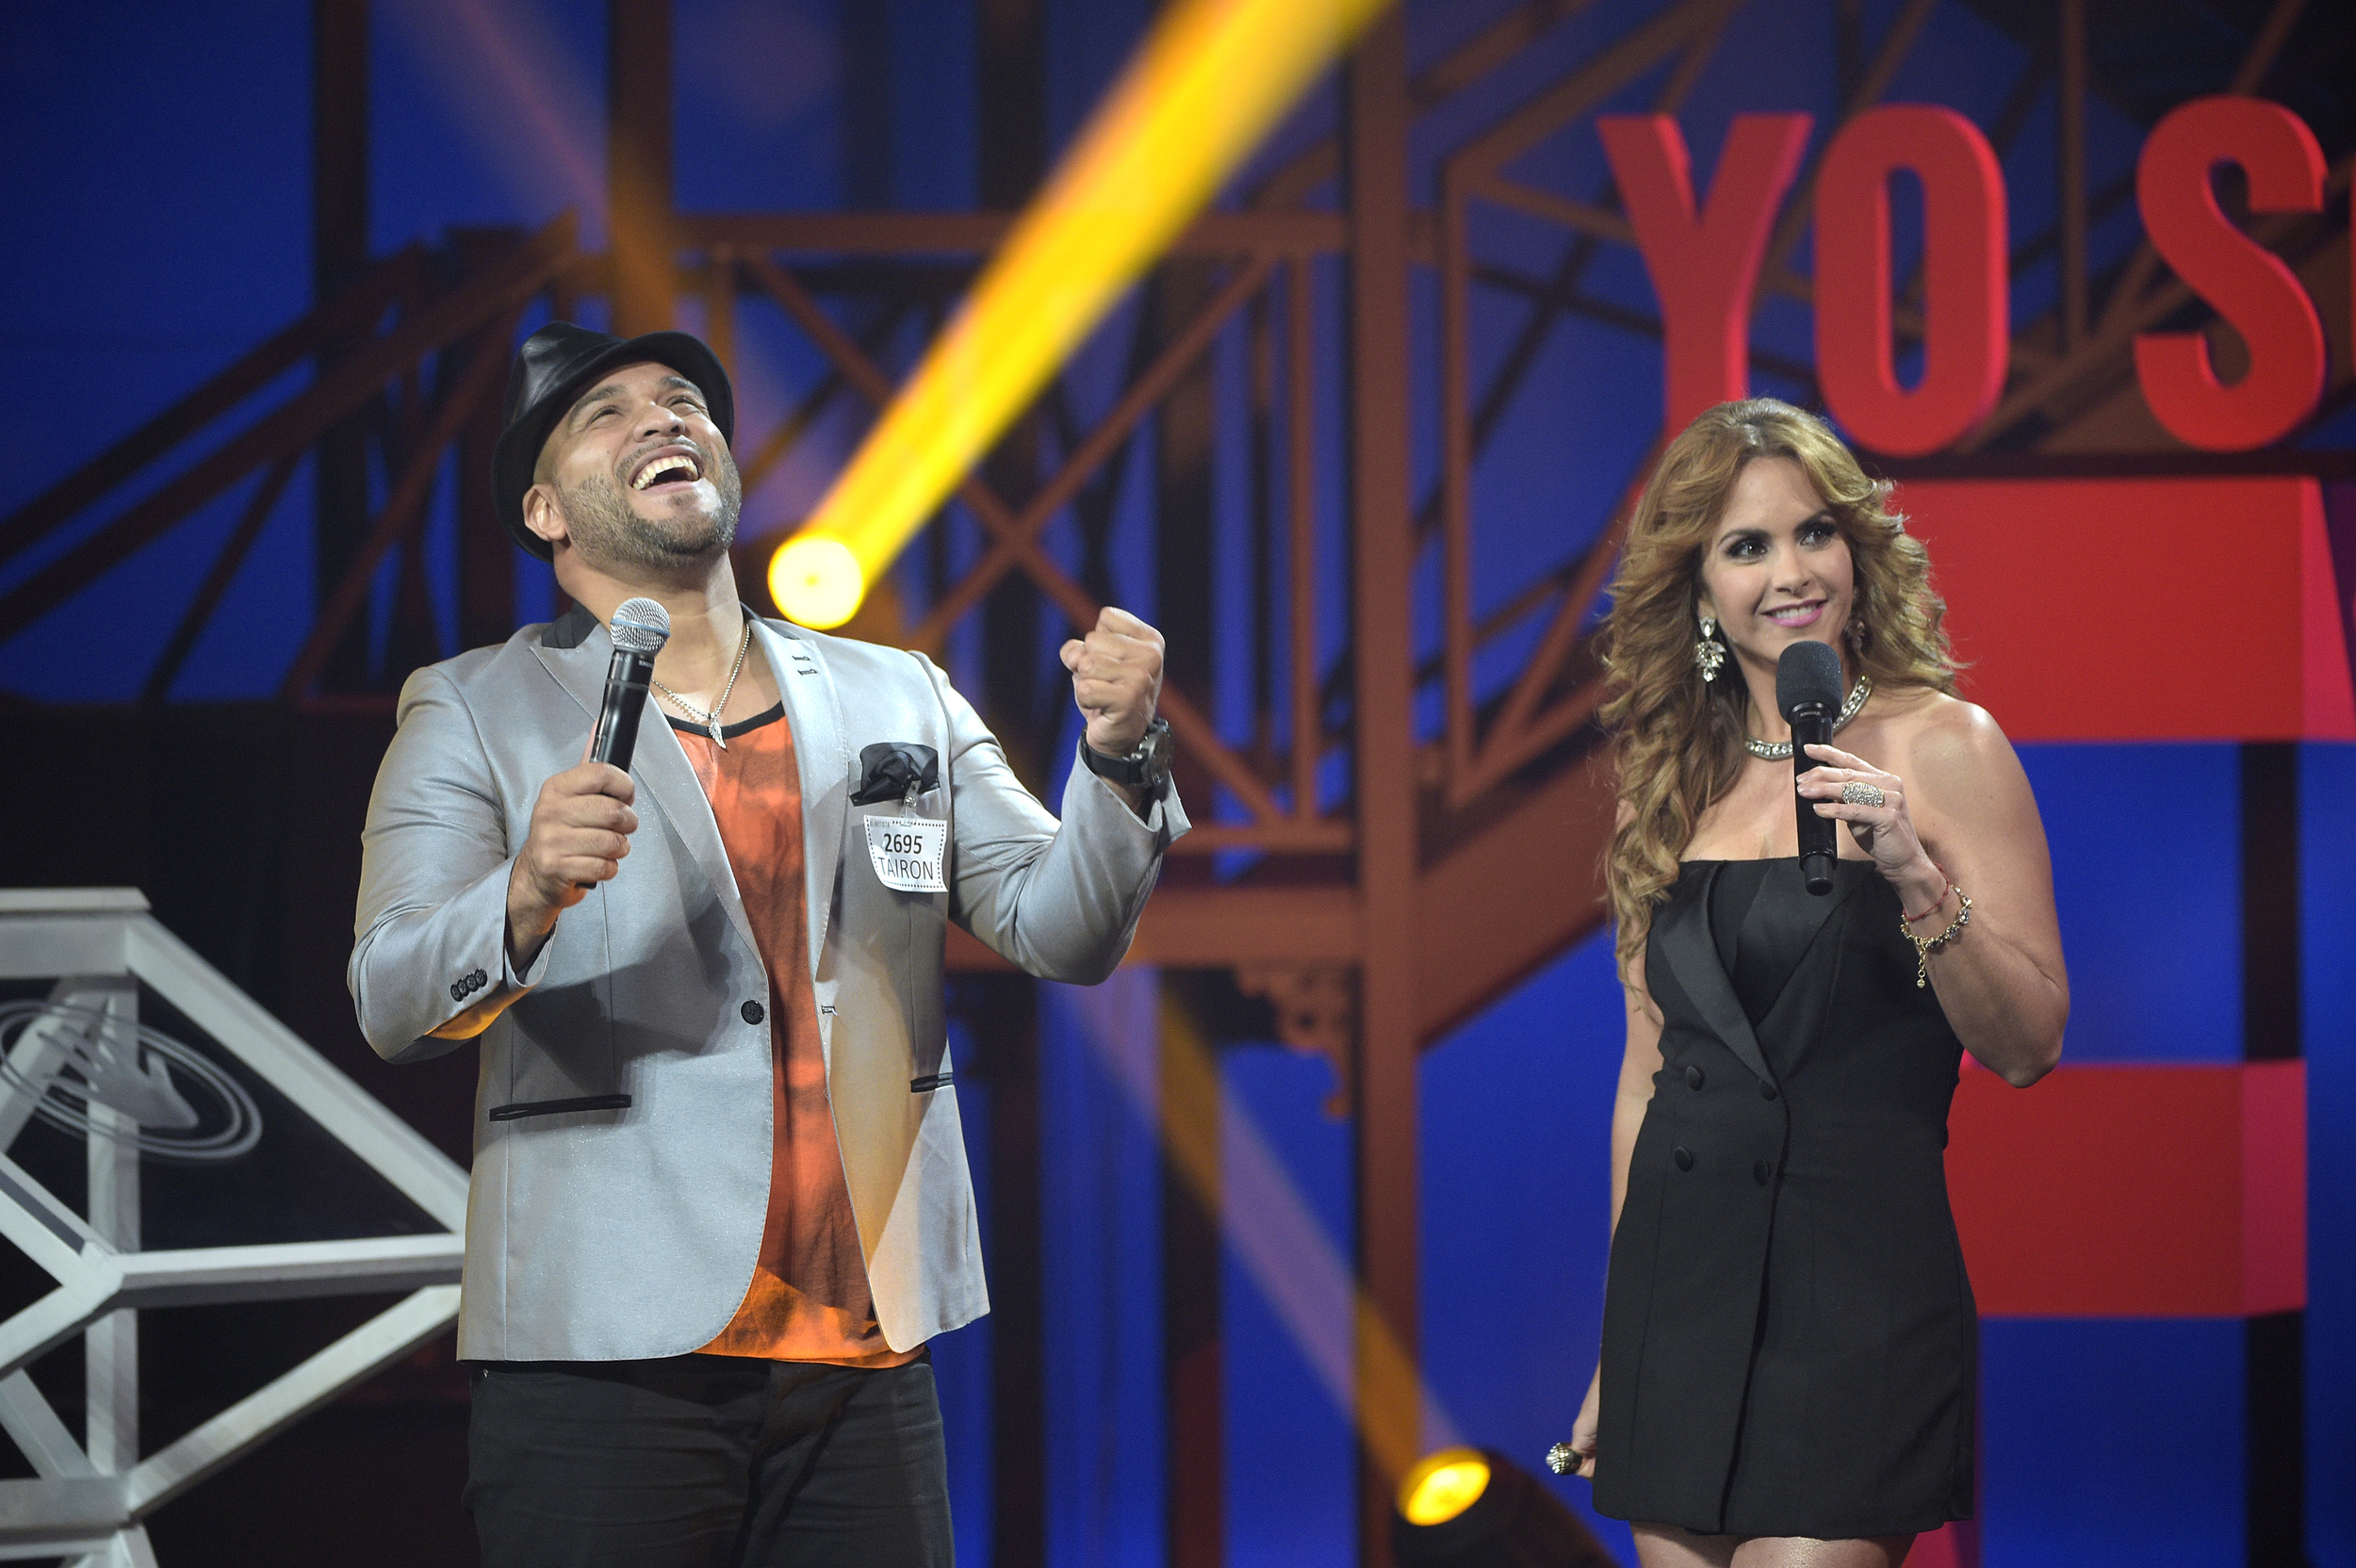 YO SOY EL ARTISTA -- Season:1 -- Pictured: (l-r) Tayron, Lucero -- (Photo by: Josh McComas/Telemundo)